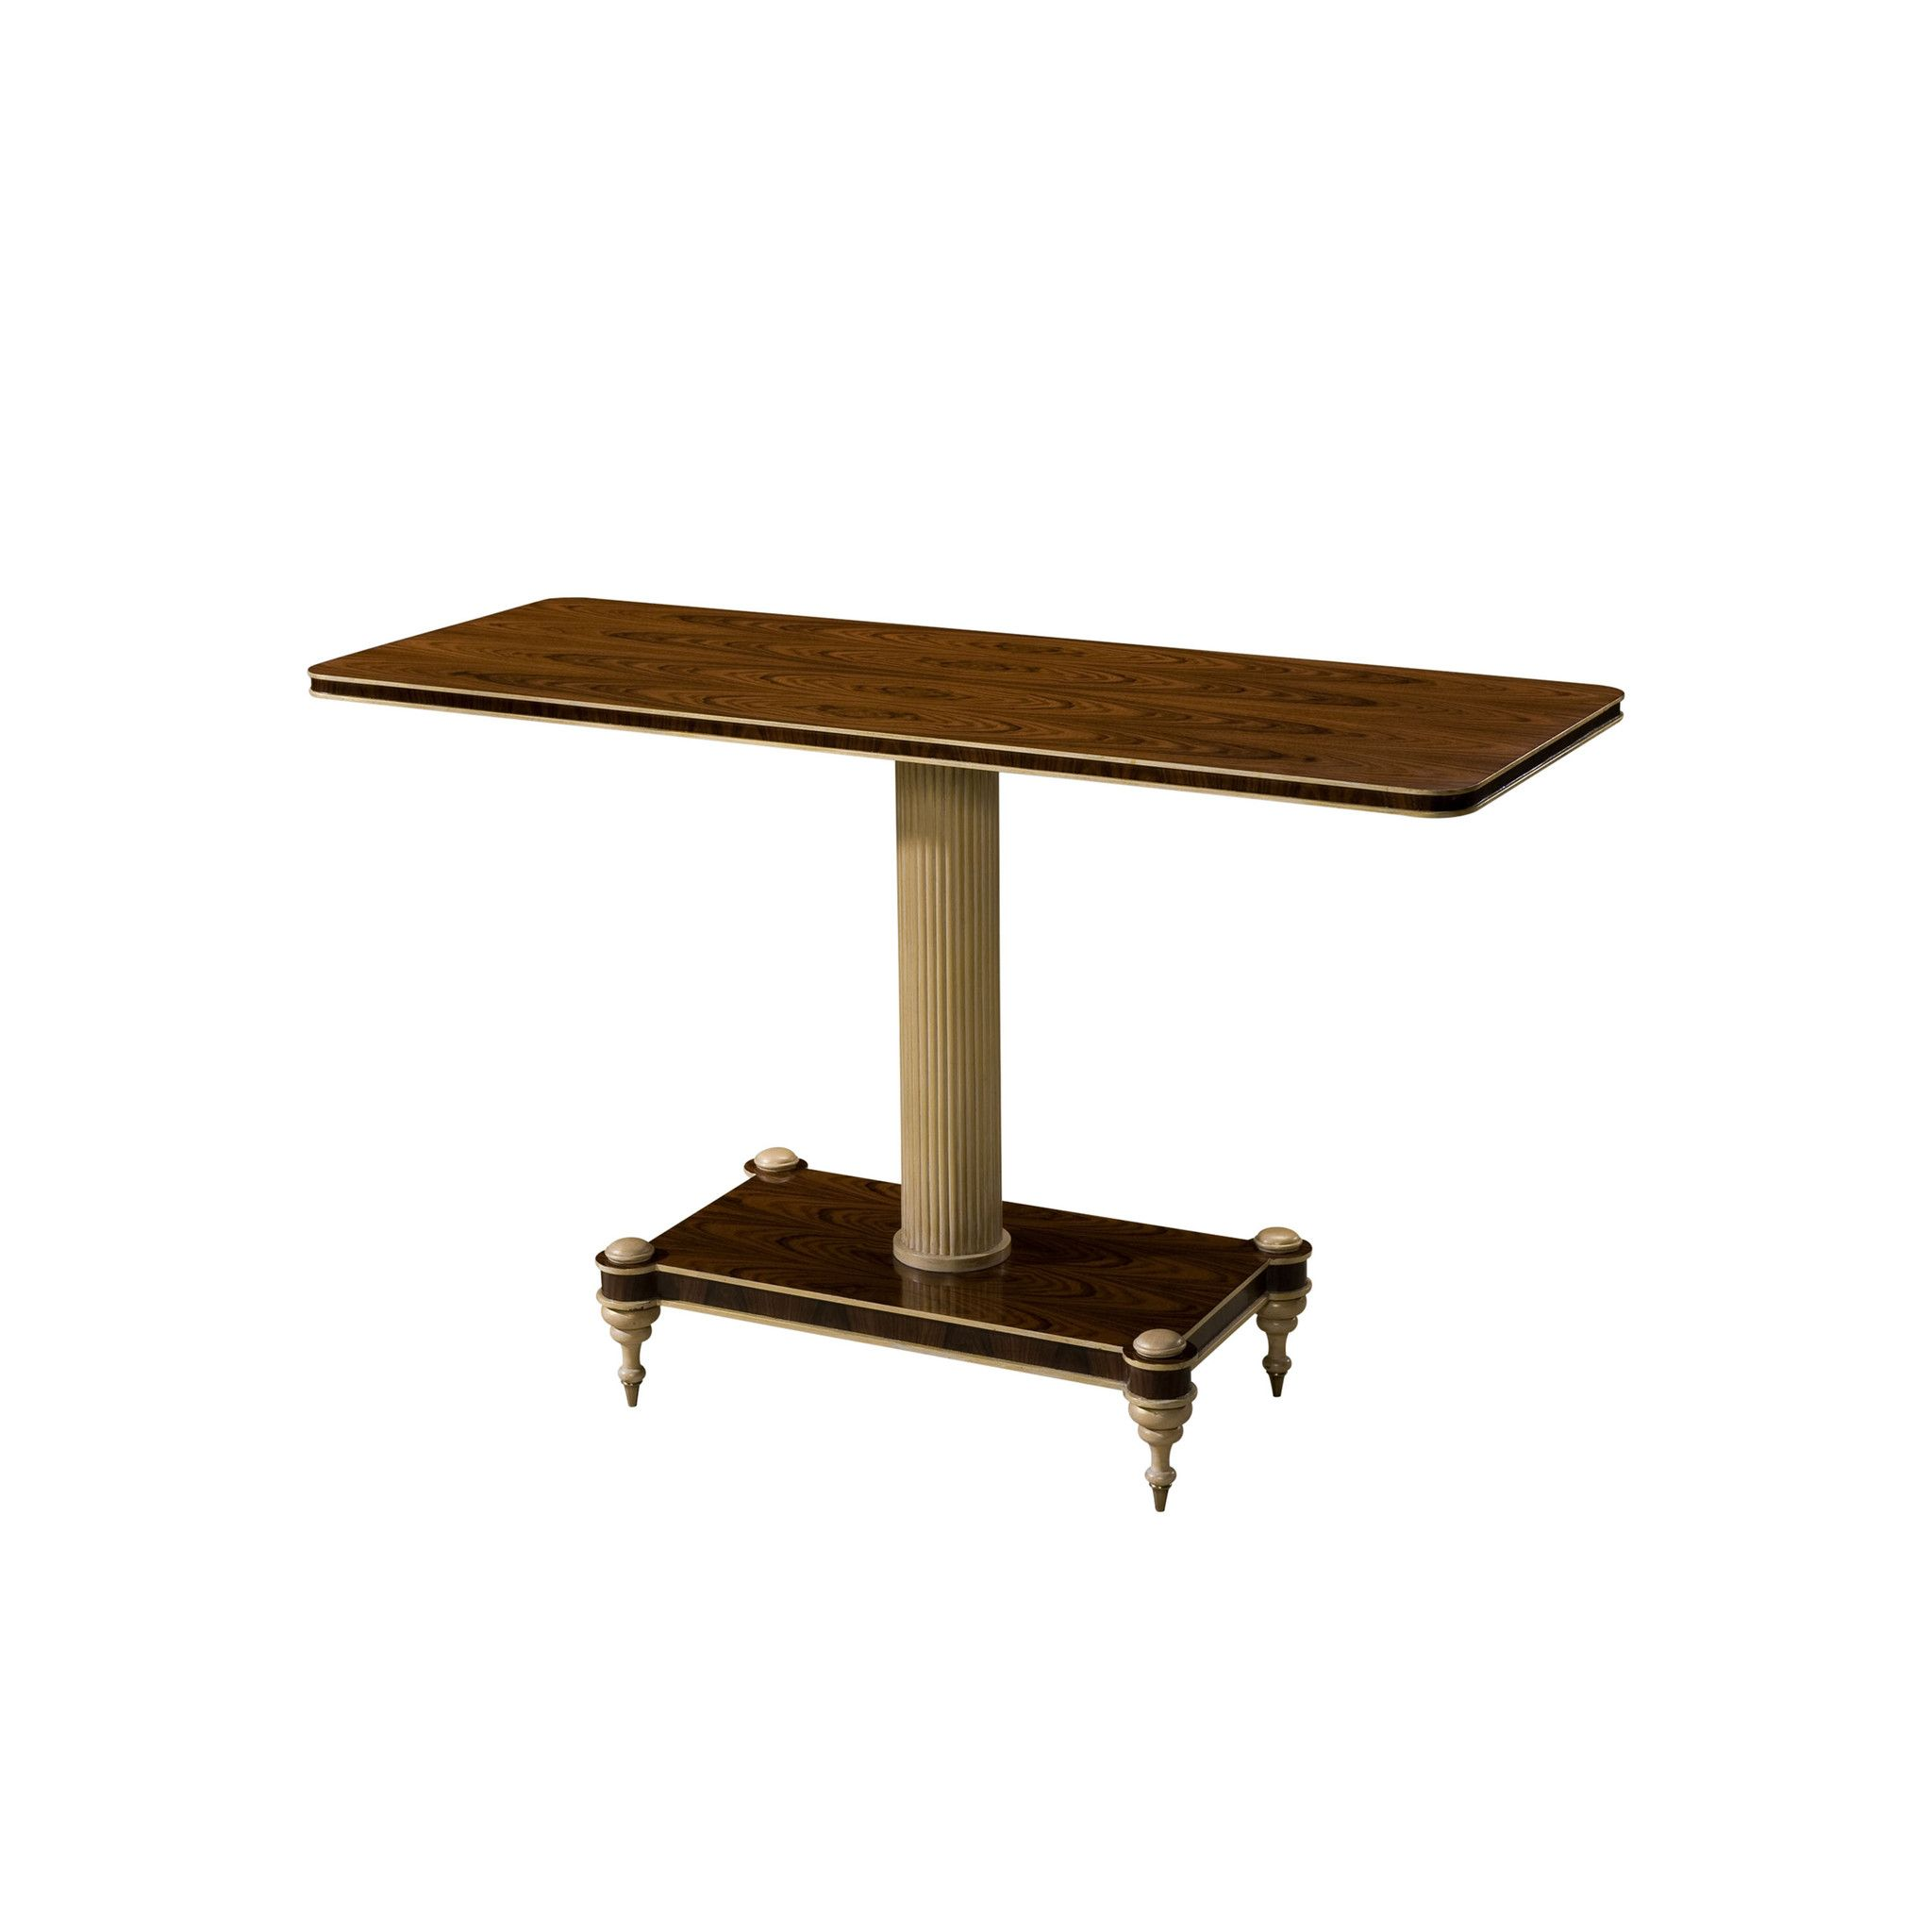 Vanucci Eclectics Softly Gilt Console 5305 260